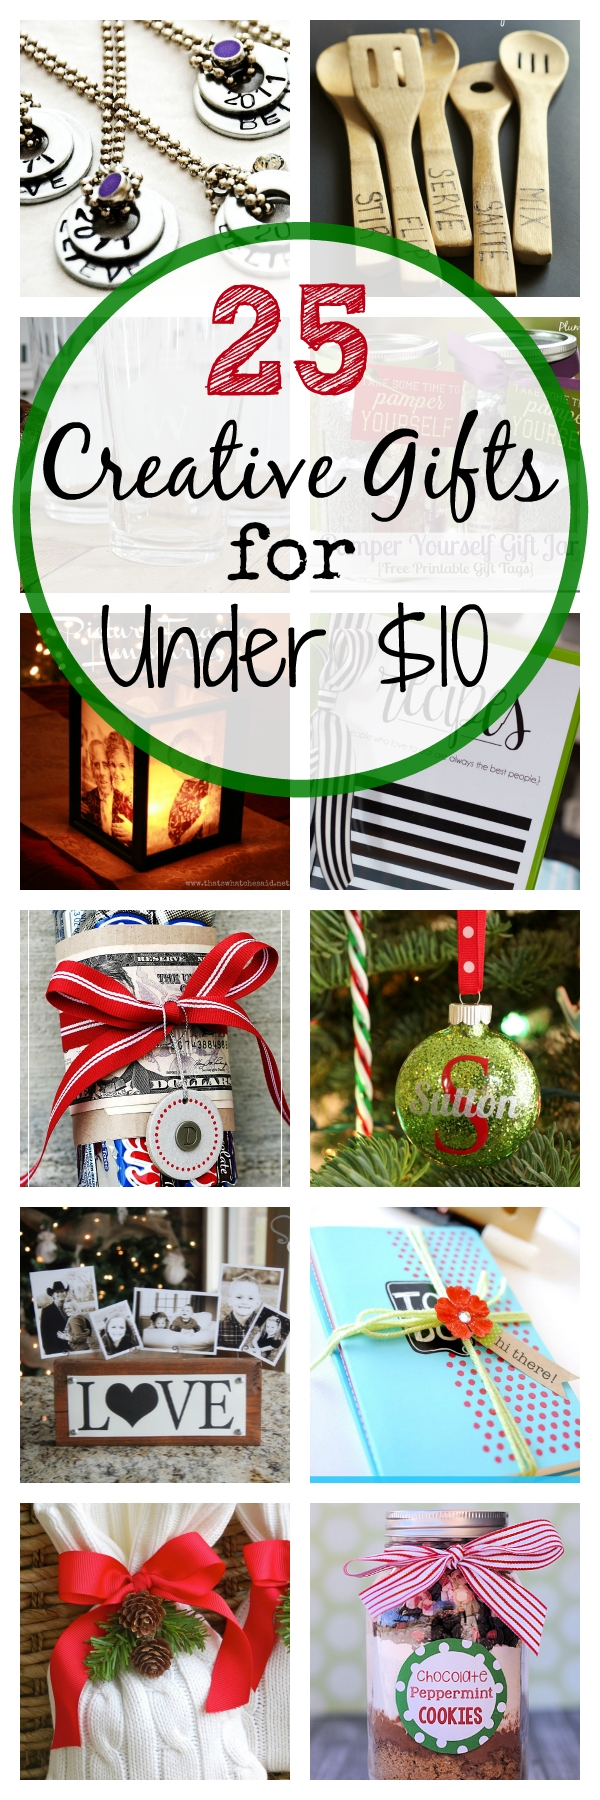 25 creative christmas gift ideas that cost under $10 - crazy little